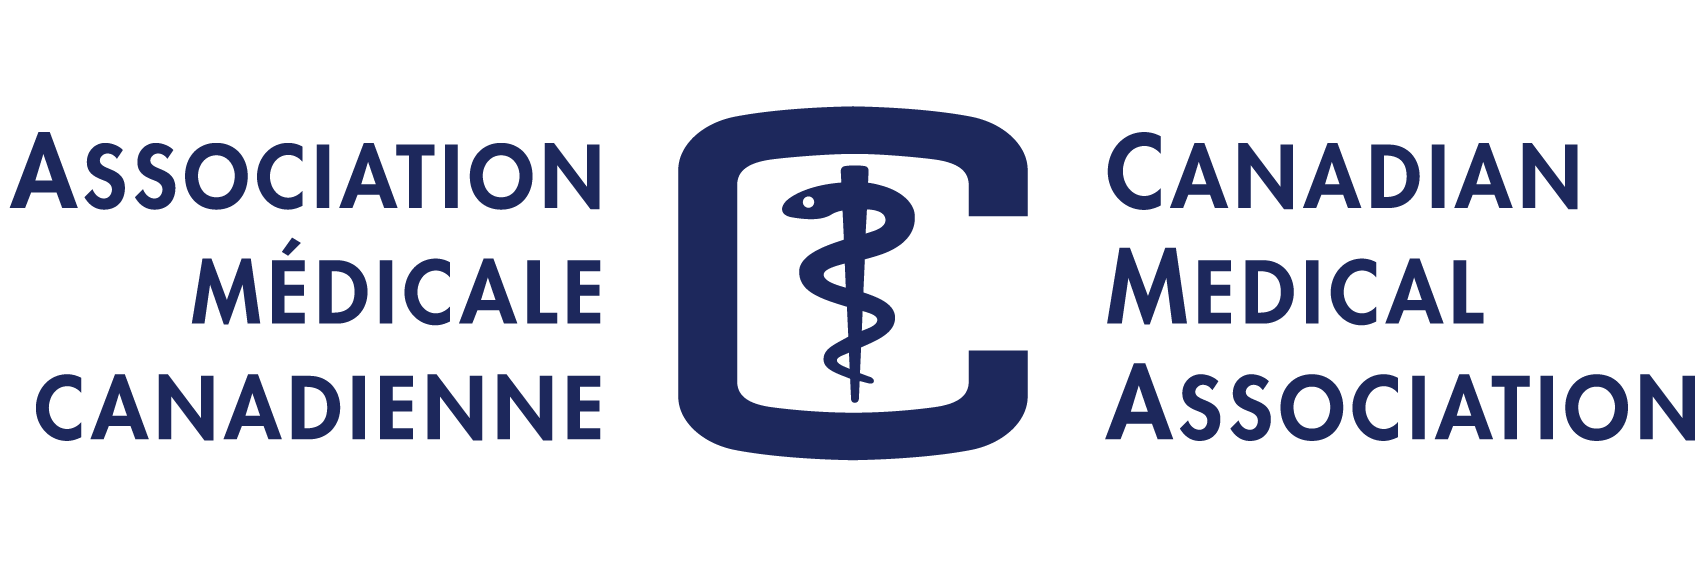 Canadian Medical Association logo